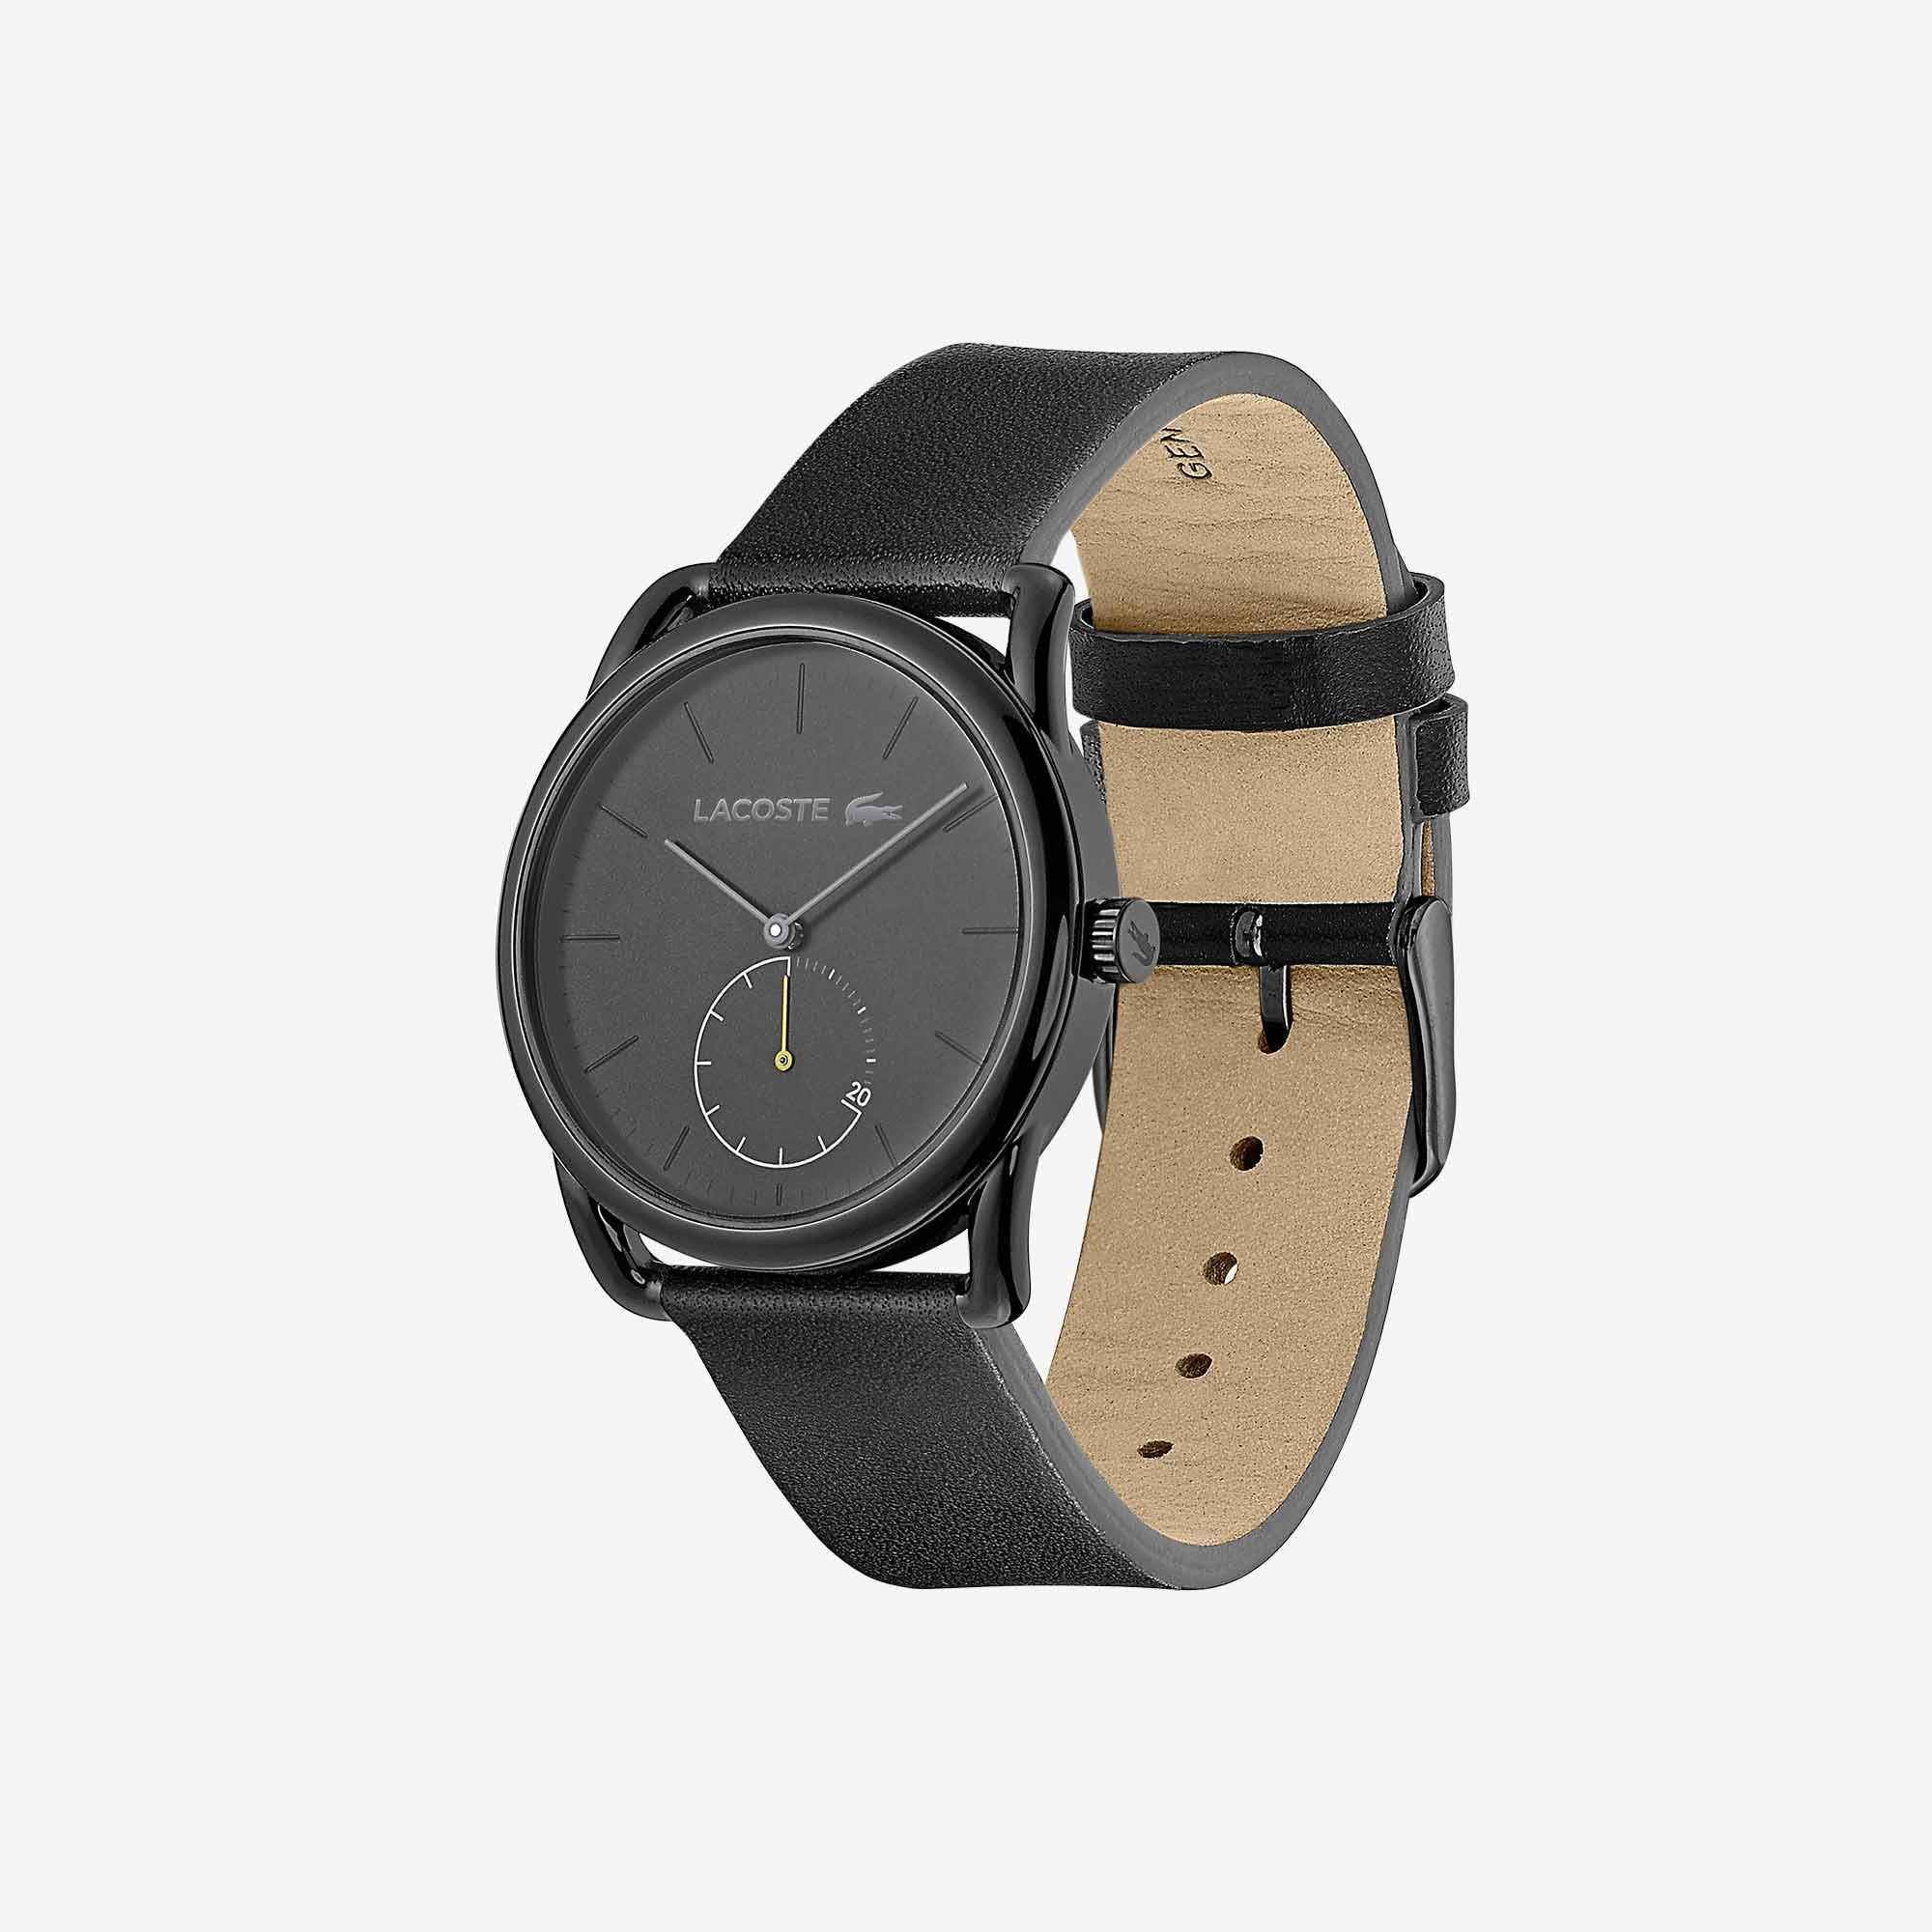 Mens Urban Watch with Black Leather Strap